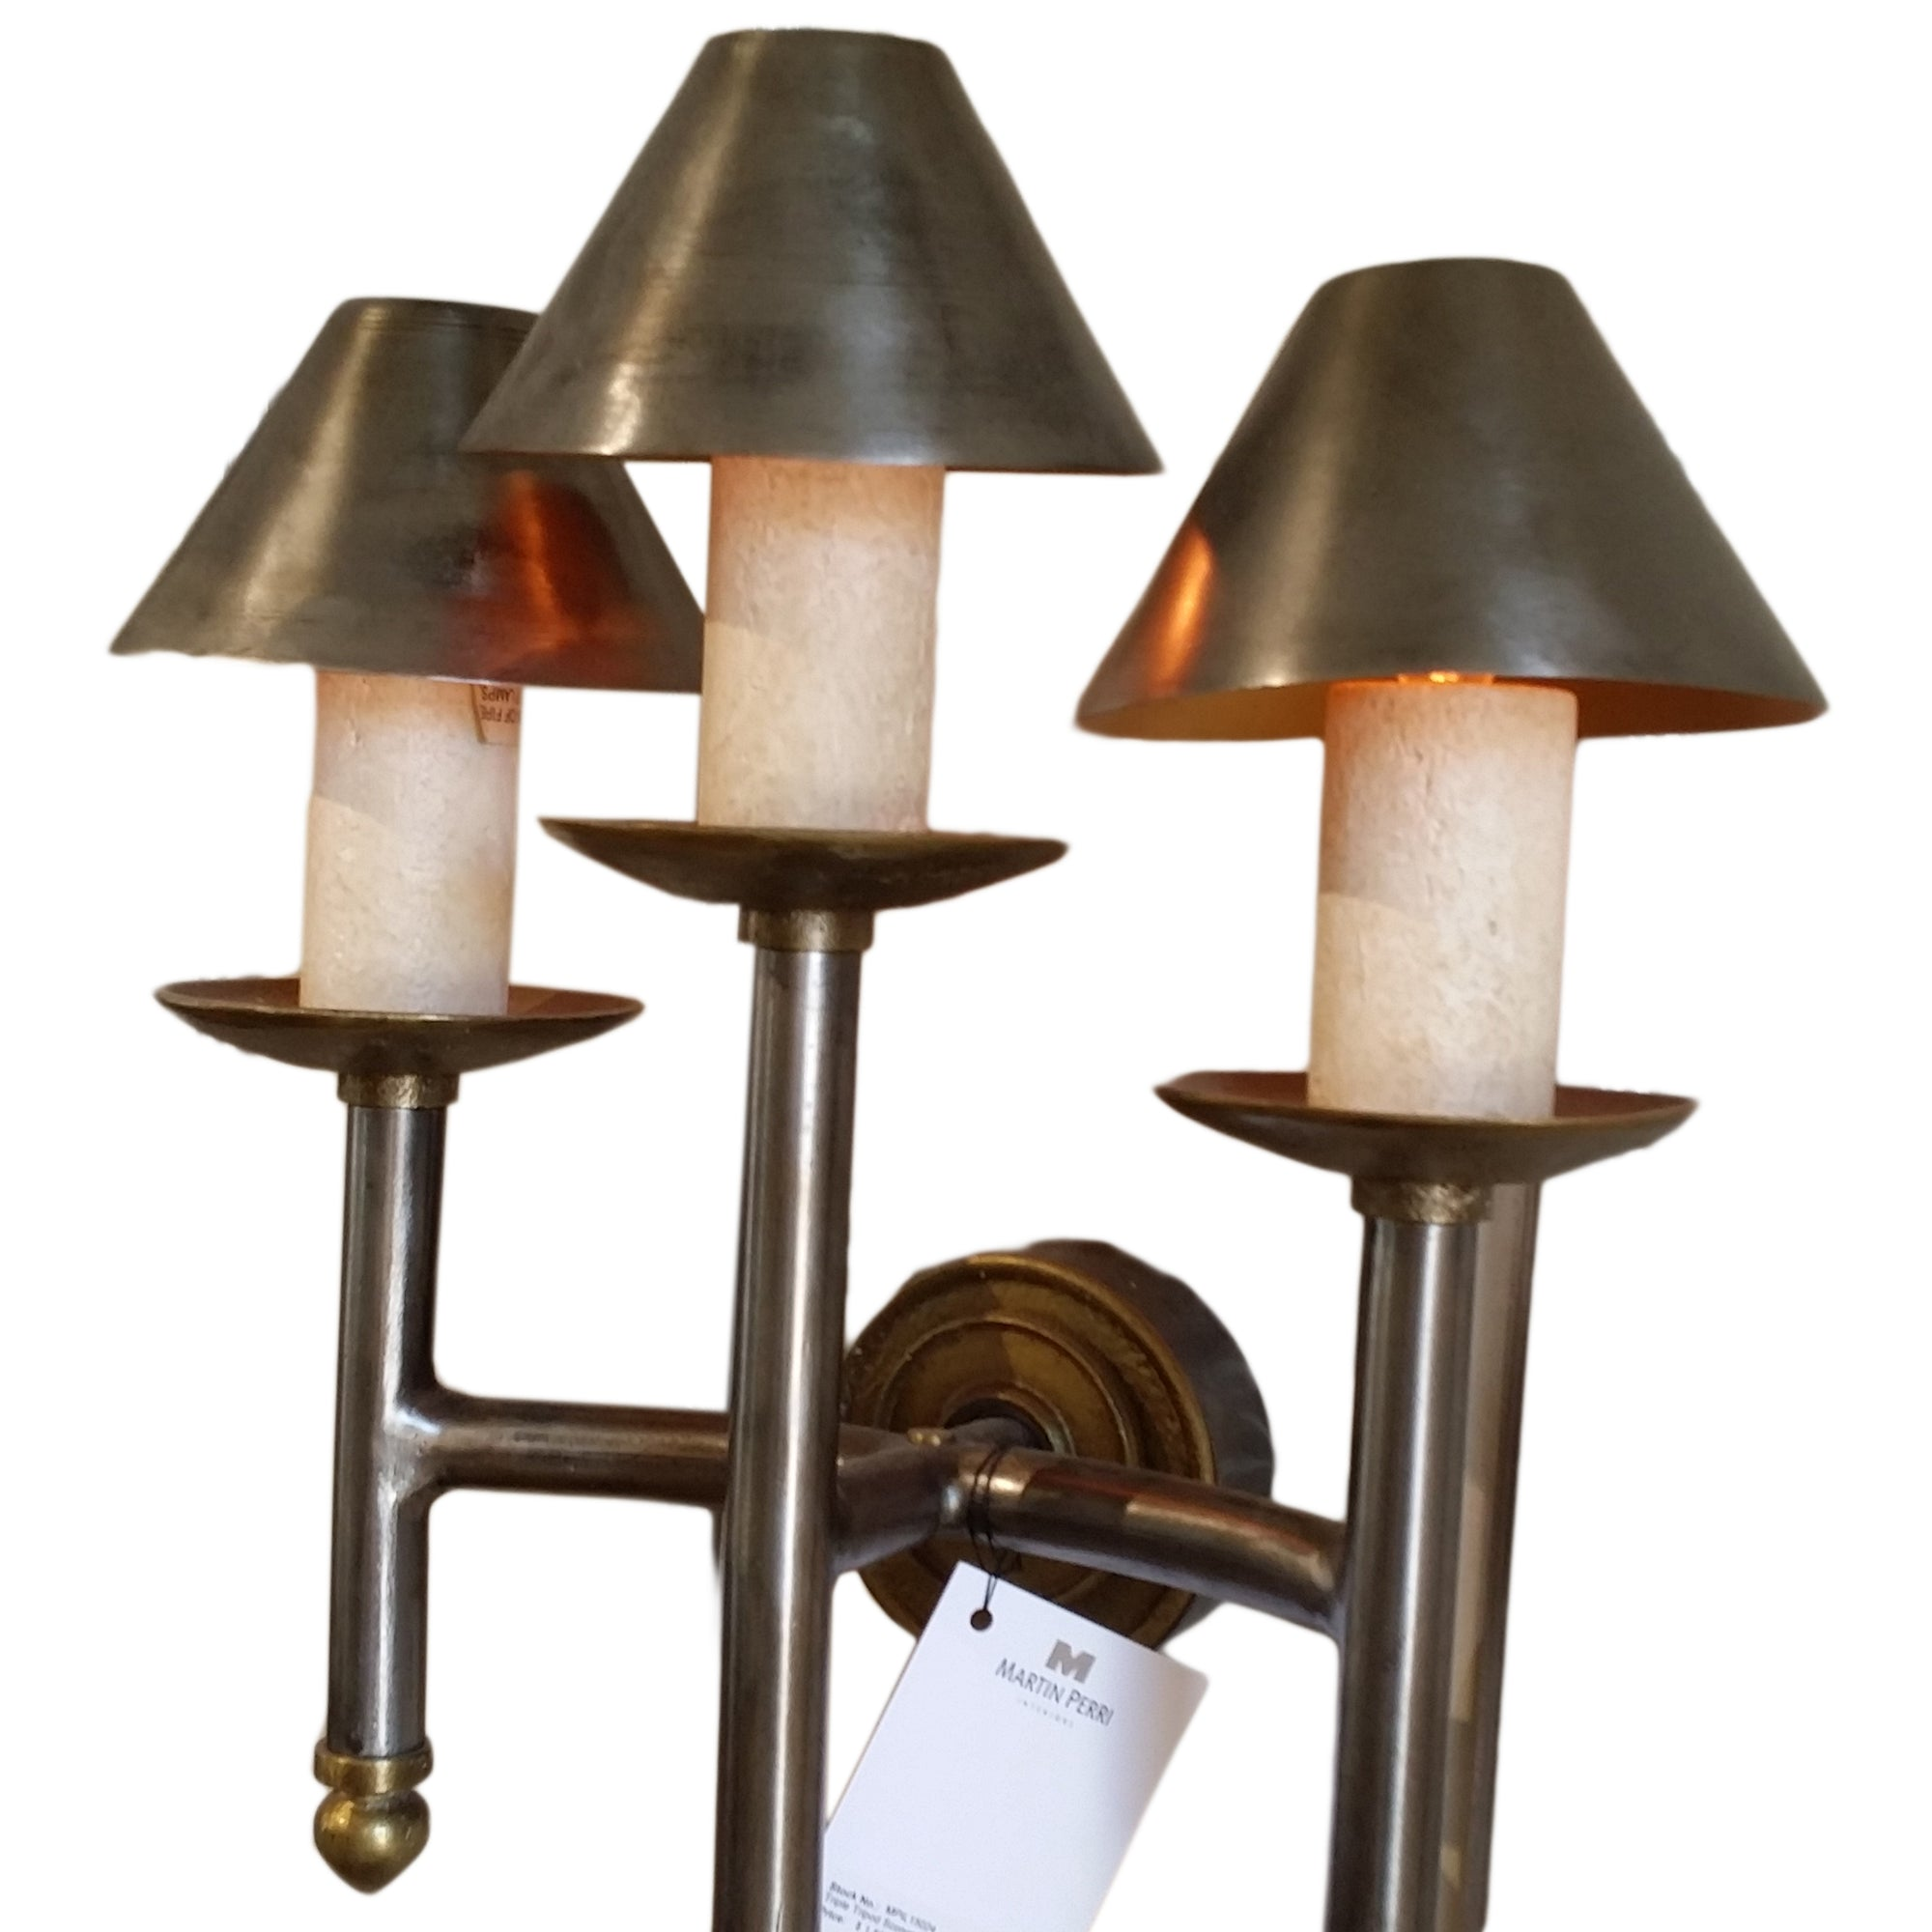 Giliani Wall Sconce Triple Tripod Gunmetal Finish